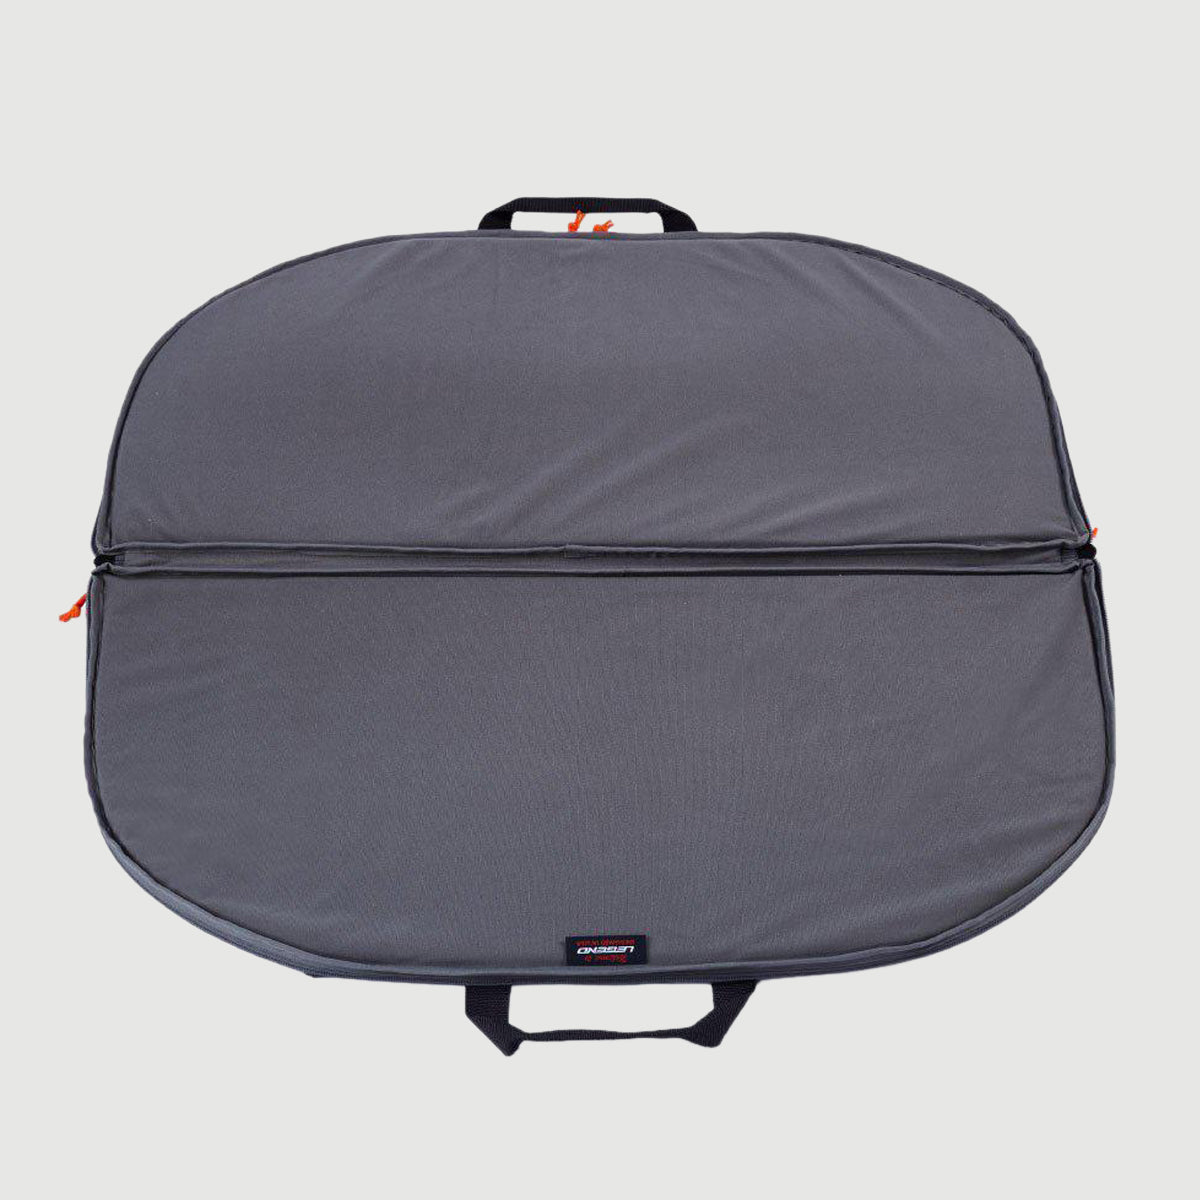 Compound Bow Case Bowarmor 92-Legend Outdoor Industries